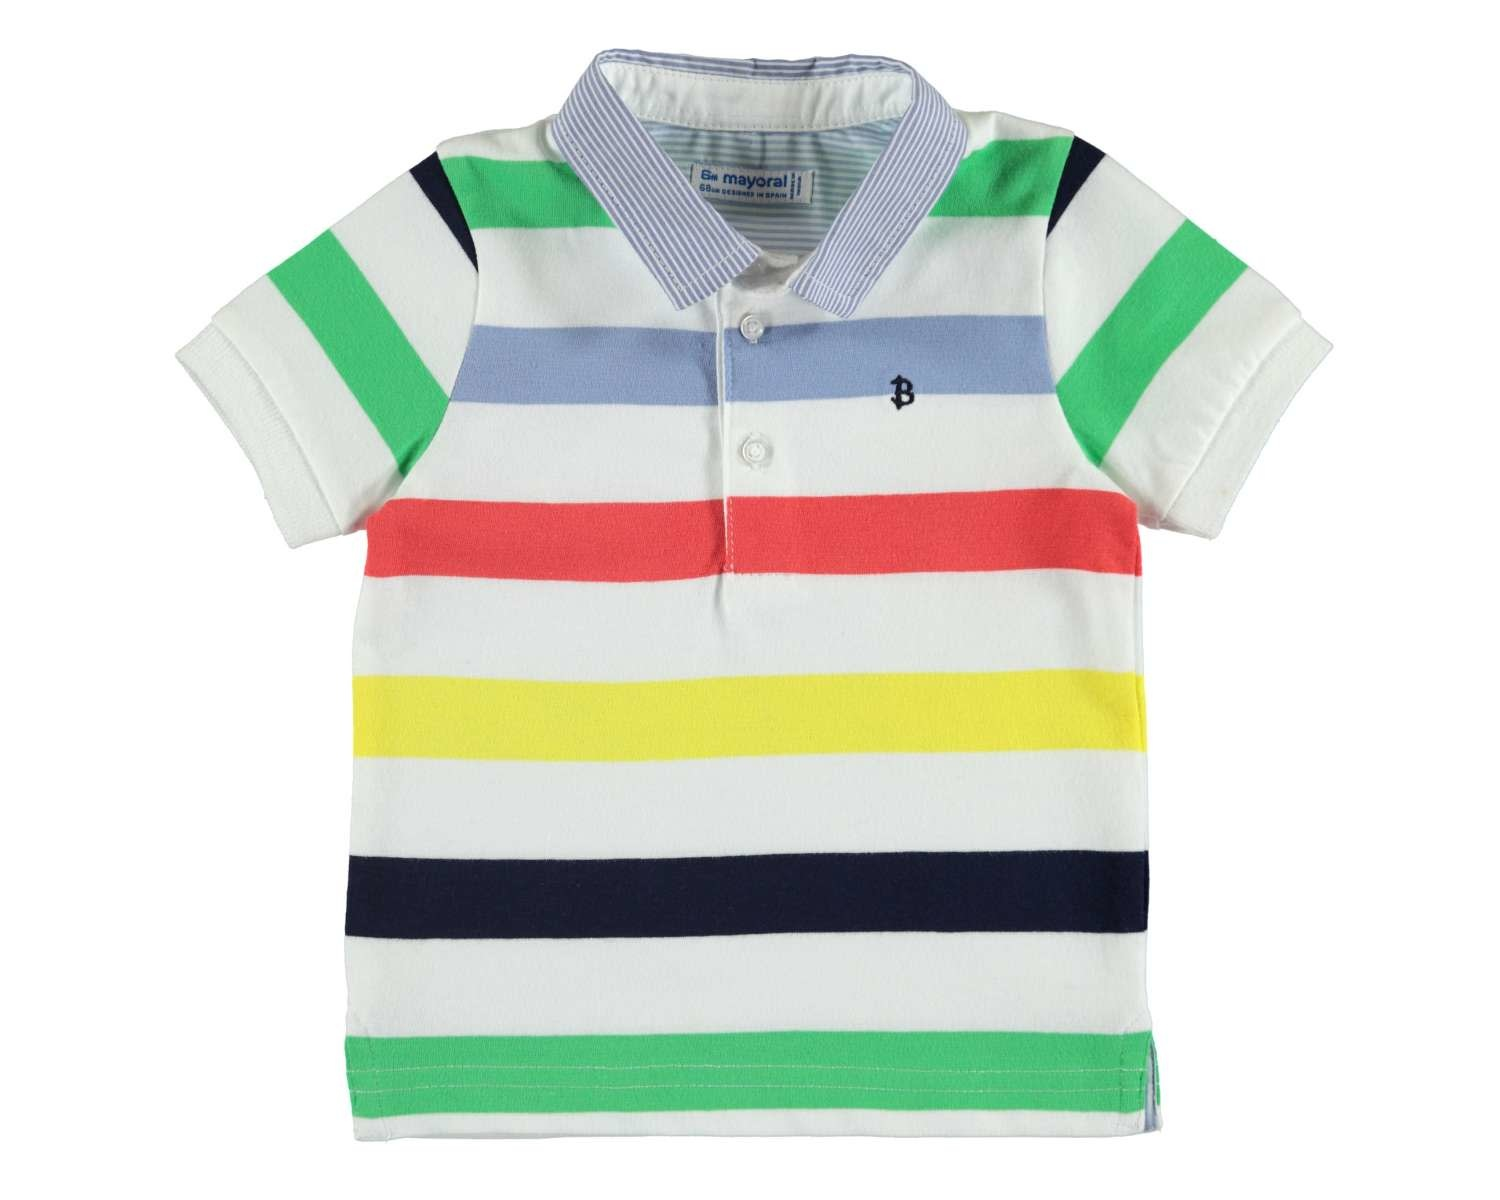 070dd684 Mayoral - Striped Polo Shirt, Celery - Charlotte et Charlie